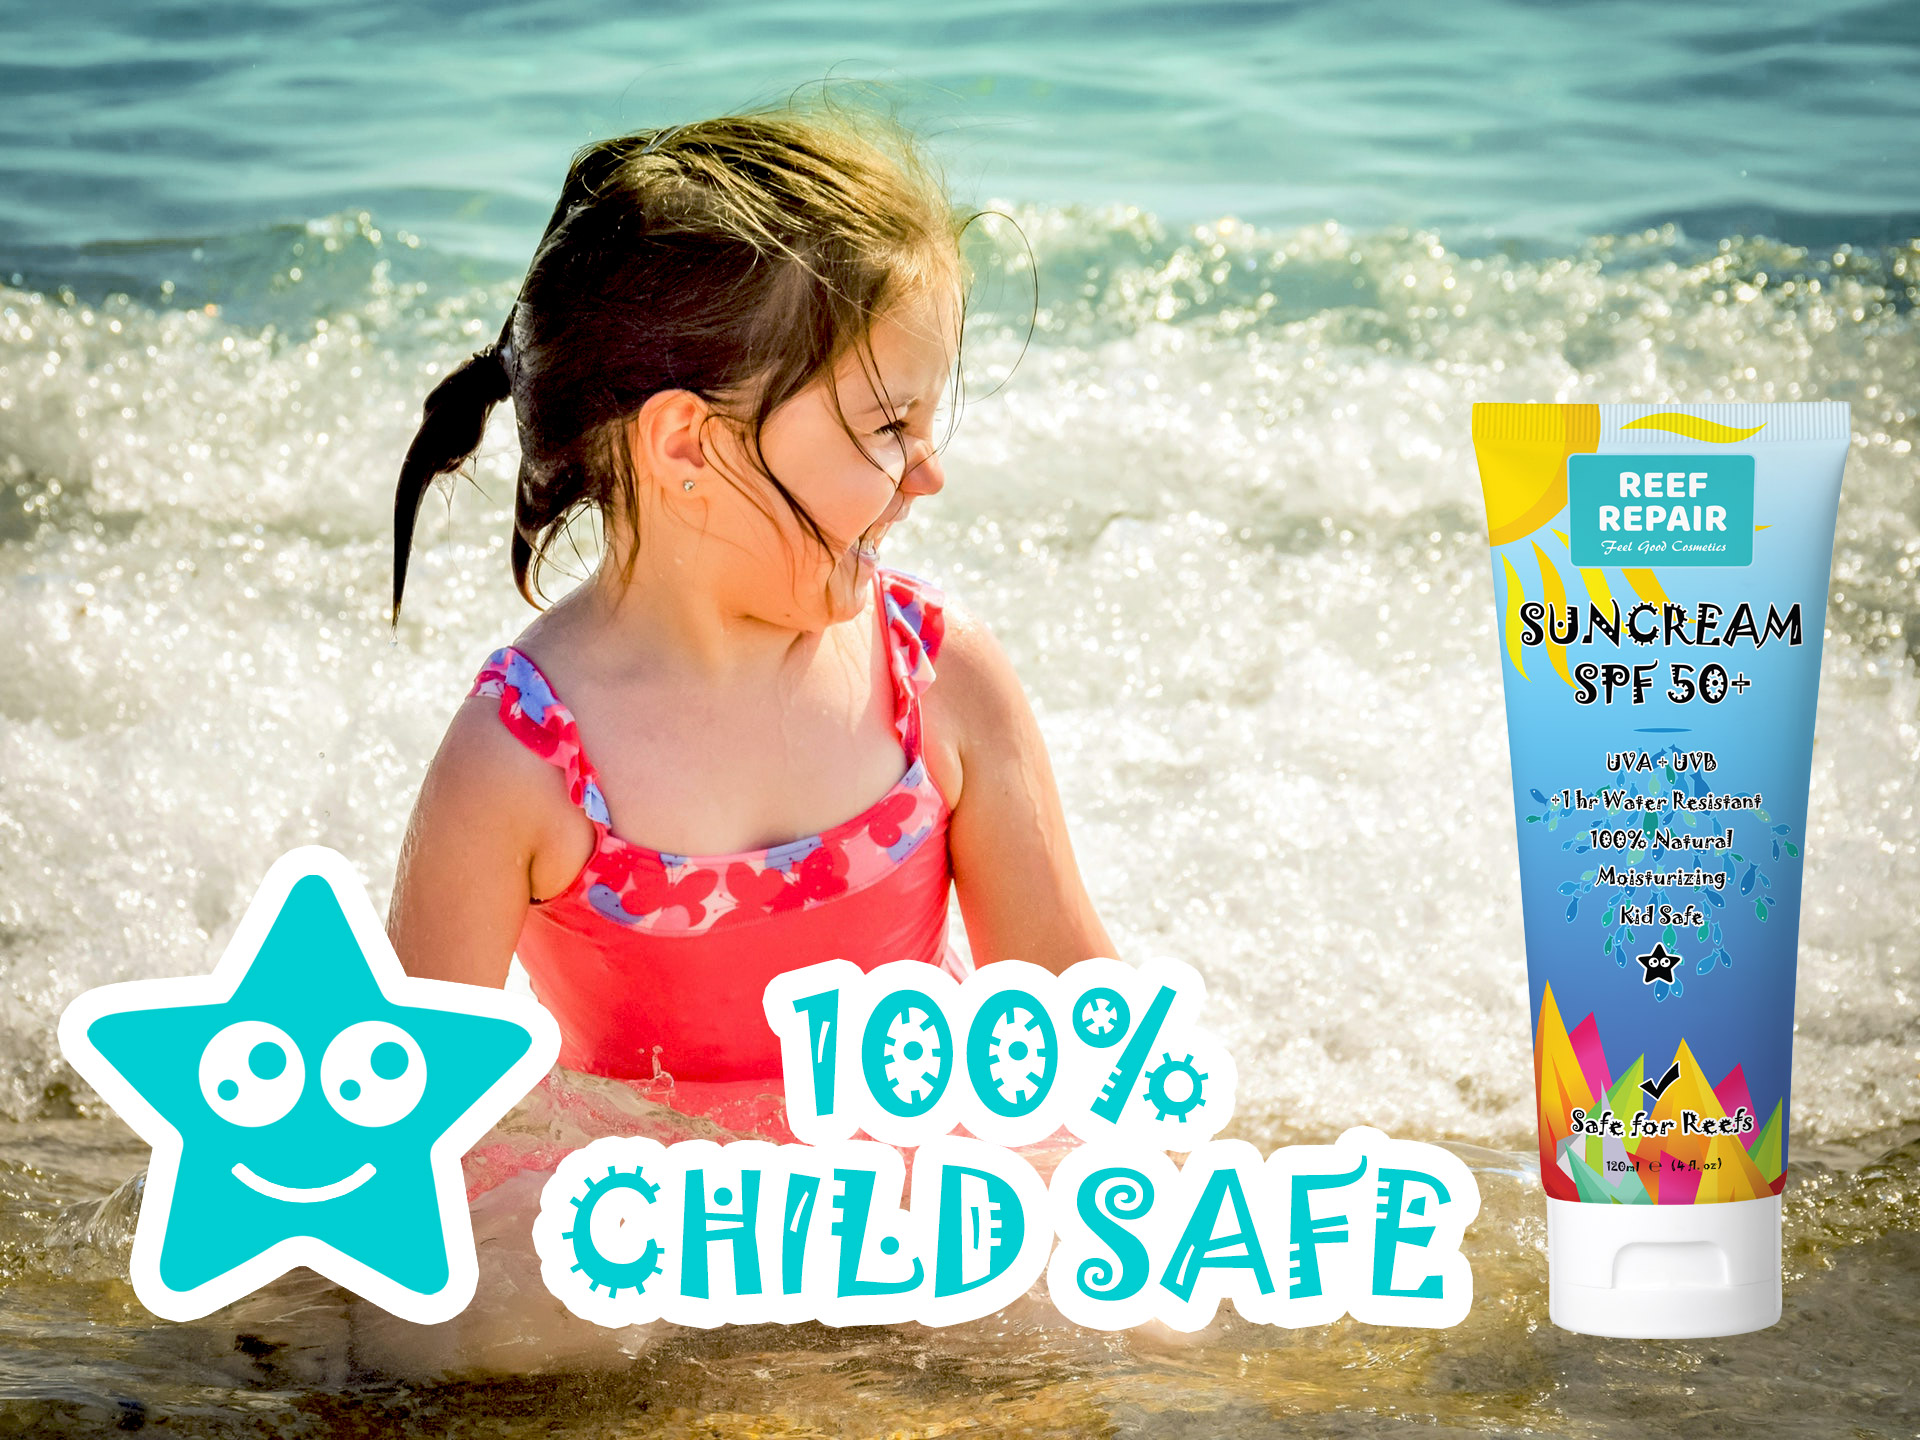 Kid Safe Child Safe Reef Safe Skin Safe All Natural Spf 50 Sunscreen For Children By Reef Repair Sun Care 120ml